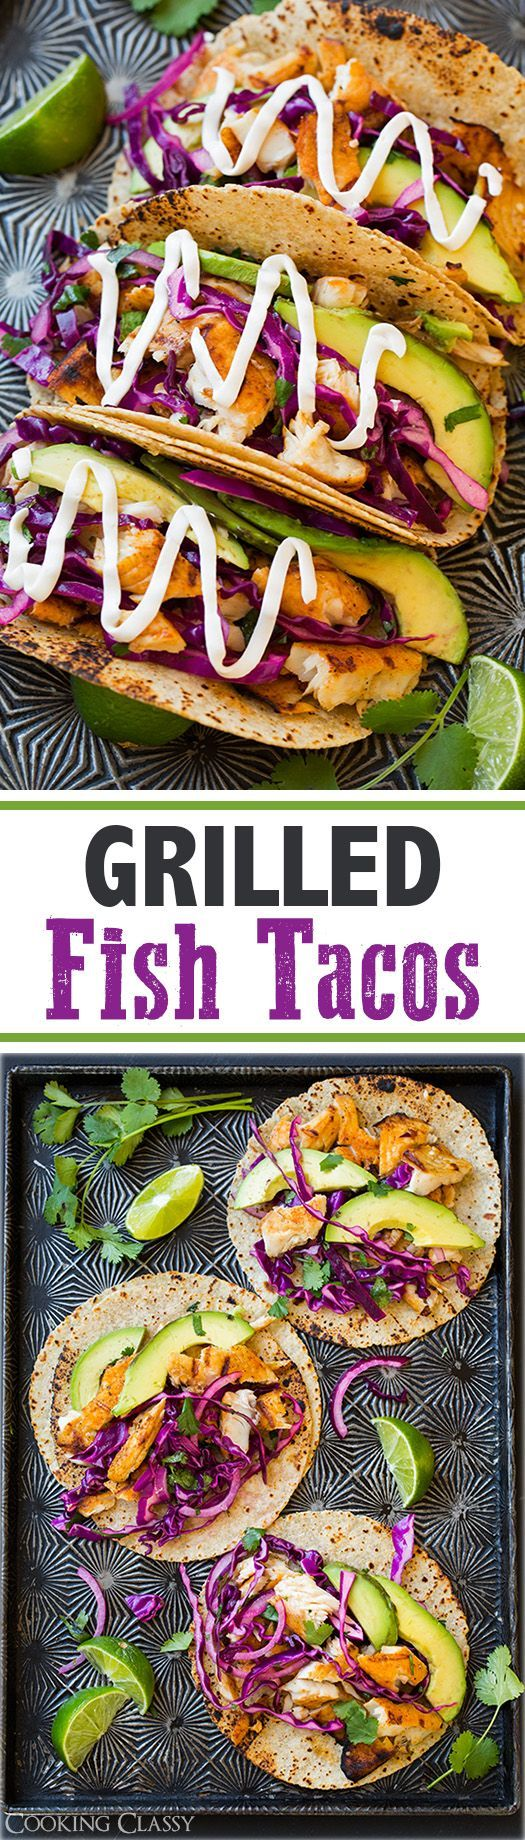 Grilled Fish Tacos with Lime Cabbage Slaw - these tacos are awesome! Delicious flavor and easy to make!